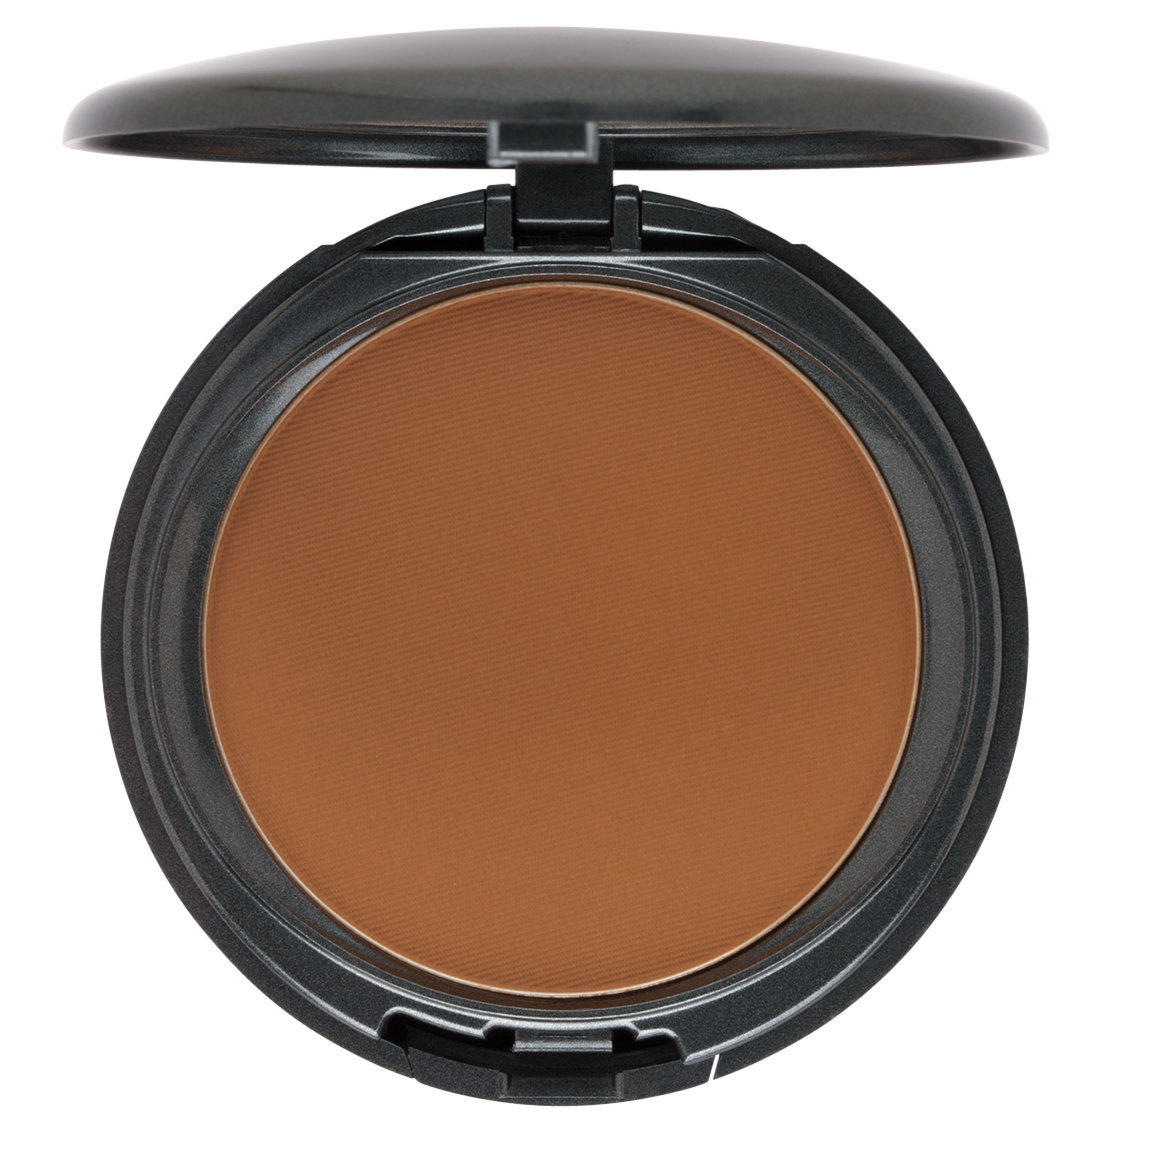 Cover FX Pressed Mineral Foundation G110